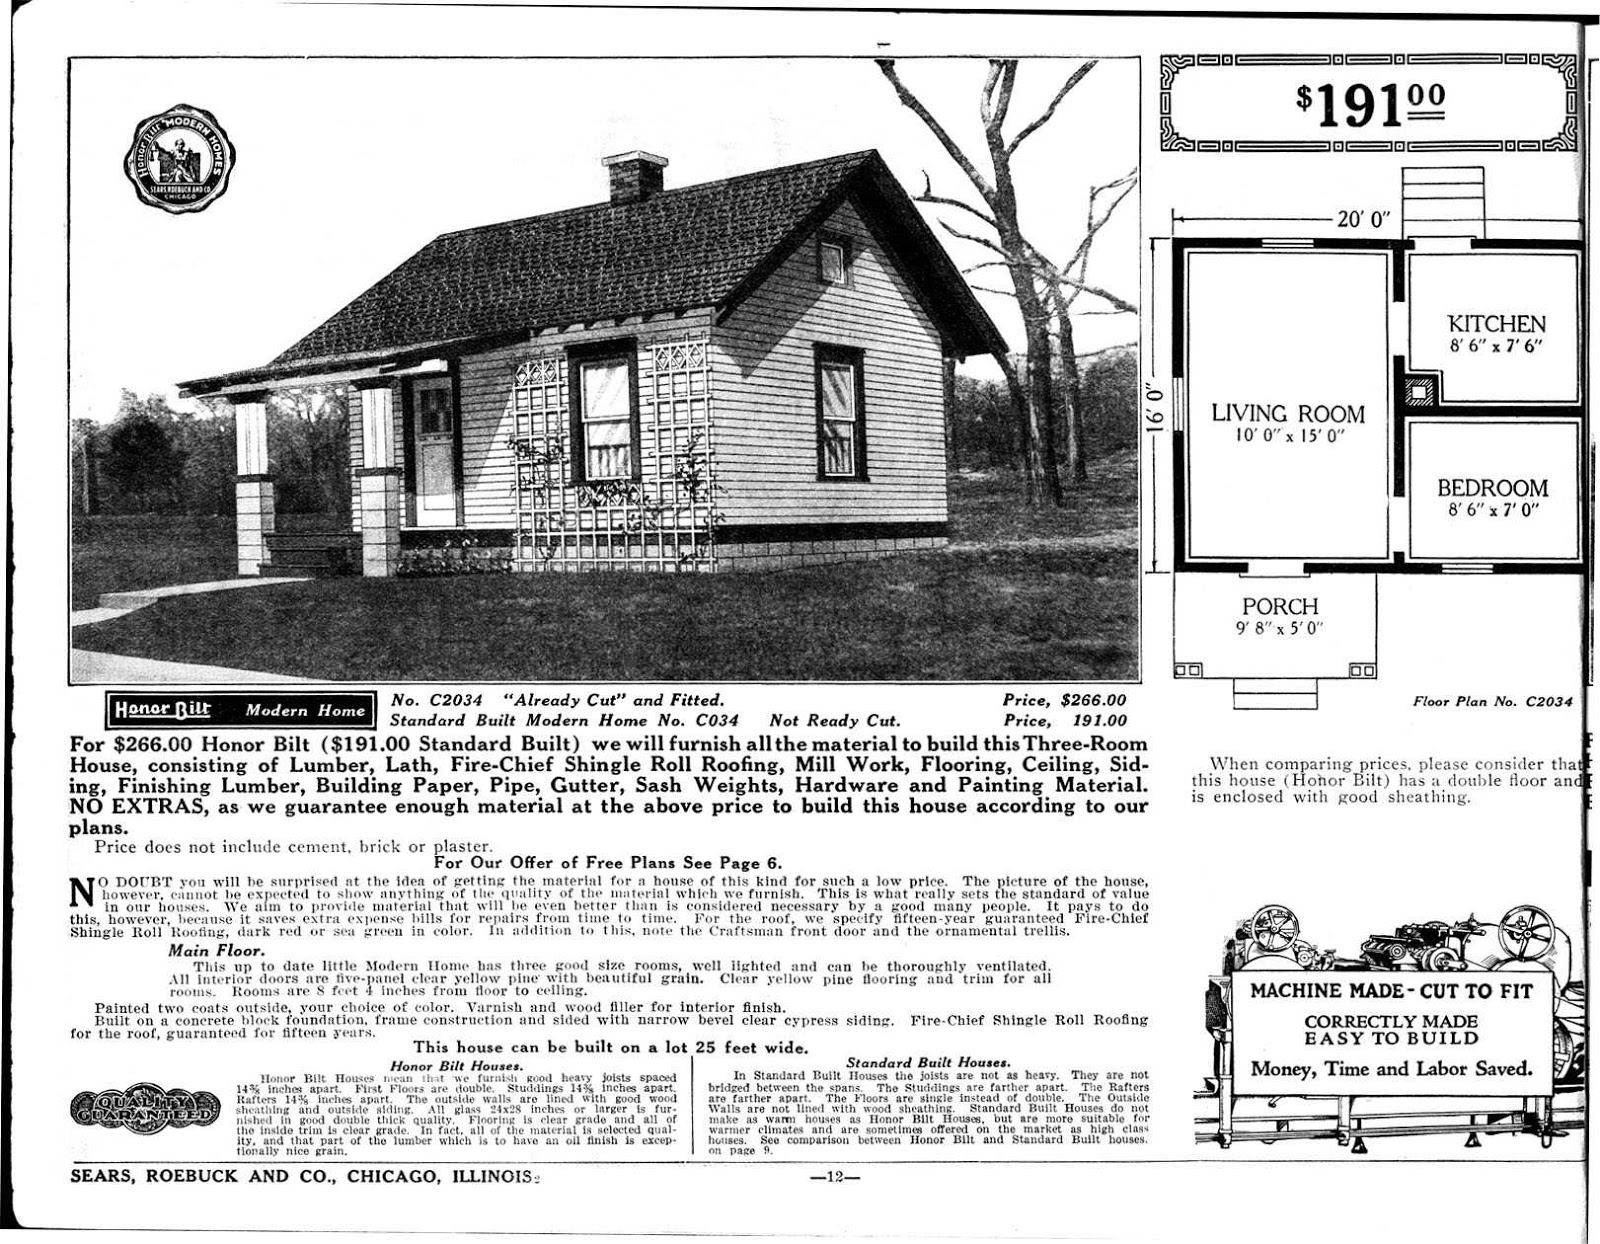 United States Navy Quonset Huts Chronology Of Sears